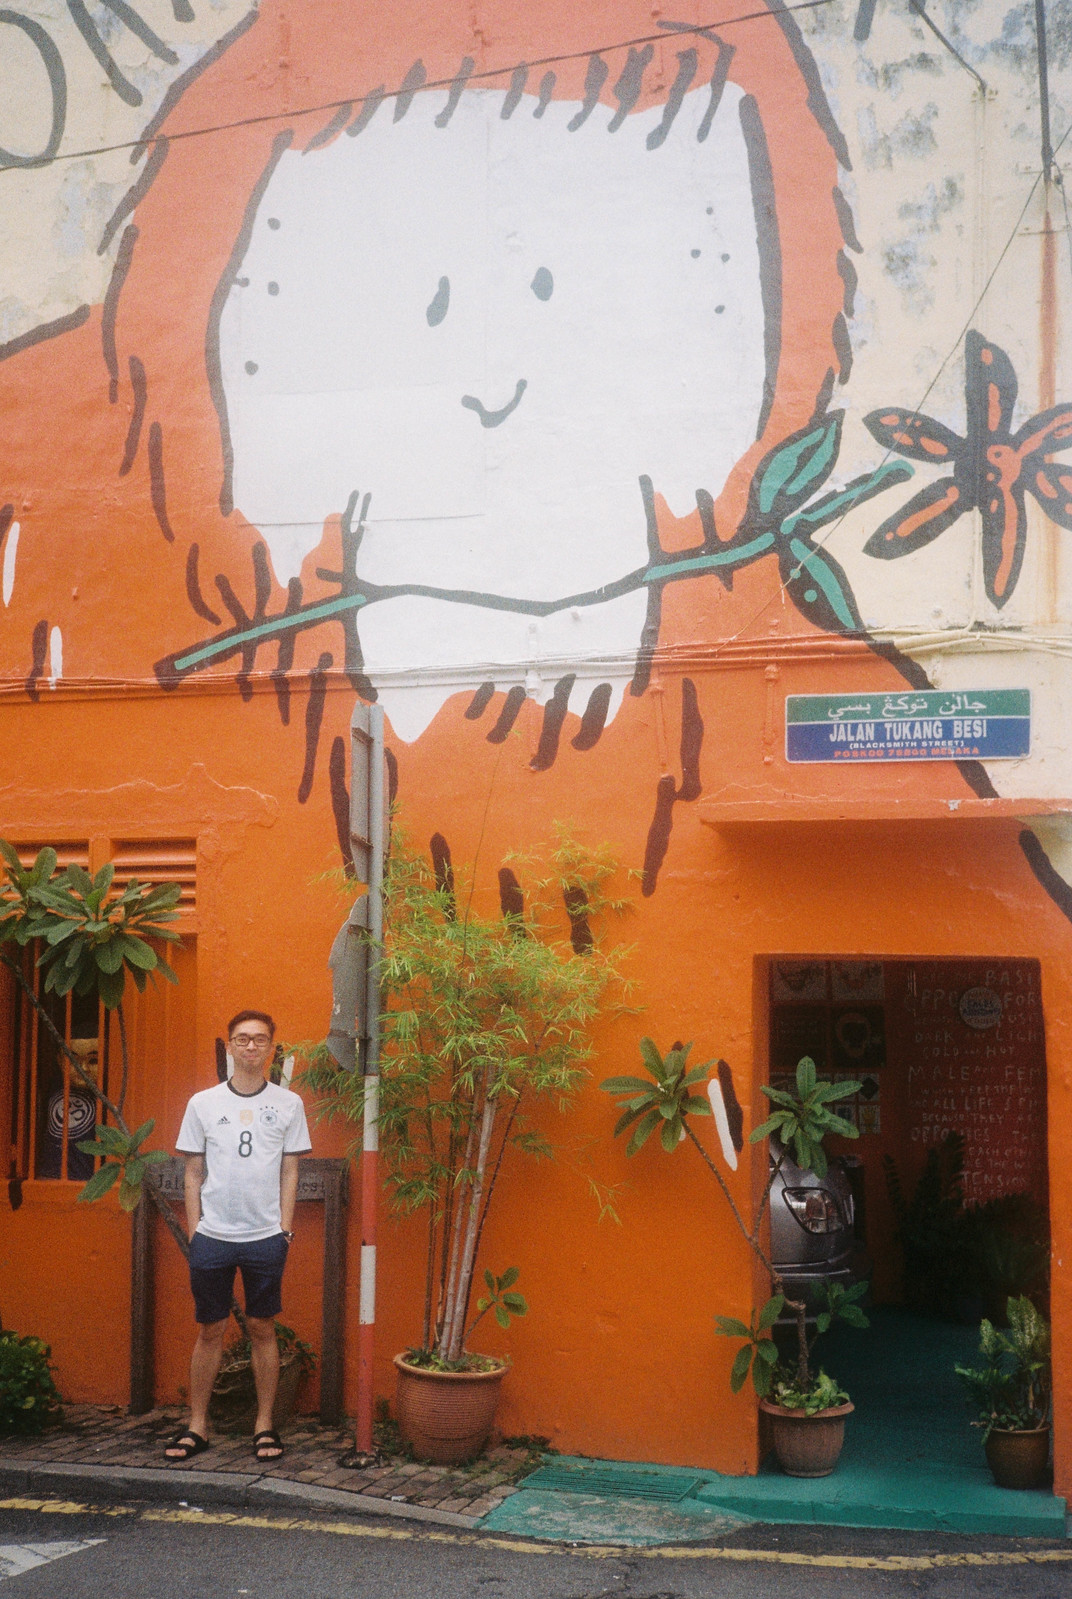 The Orangutan House, Jonker Street